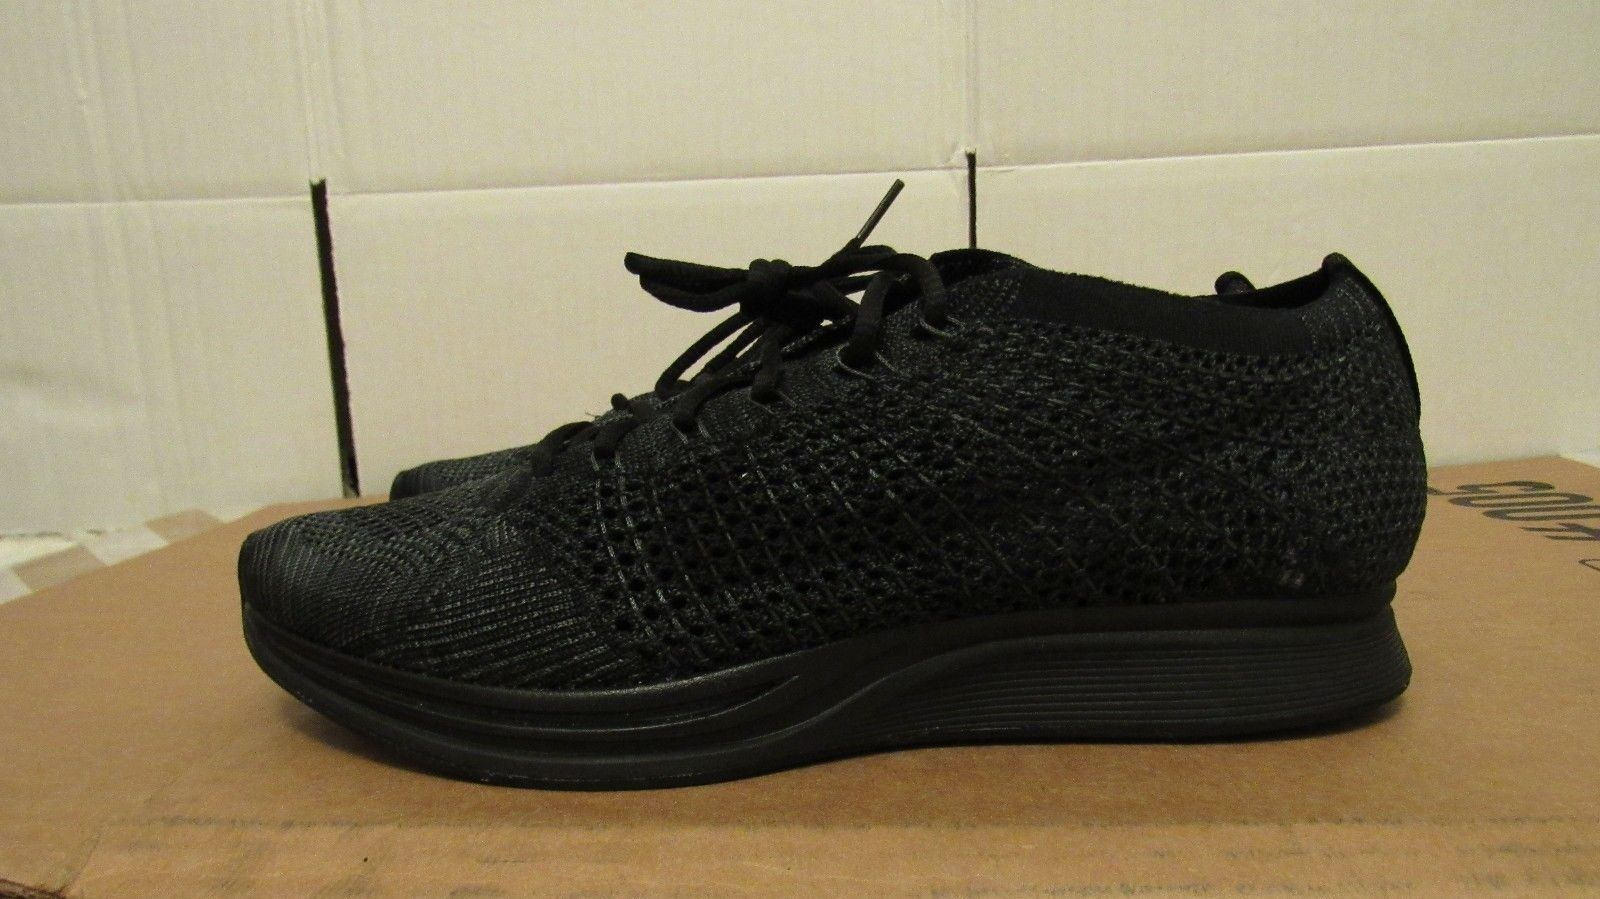 New Nike Flyknit Racers Midnight Running shoes (526628-009) Size 6 6 6 a6dfff